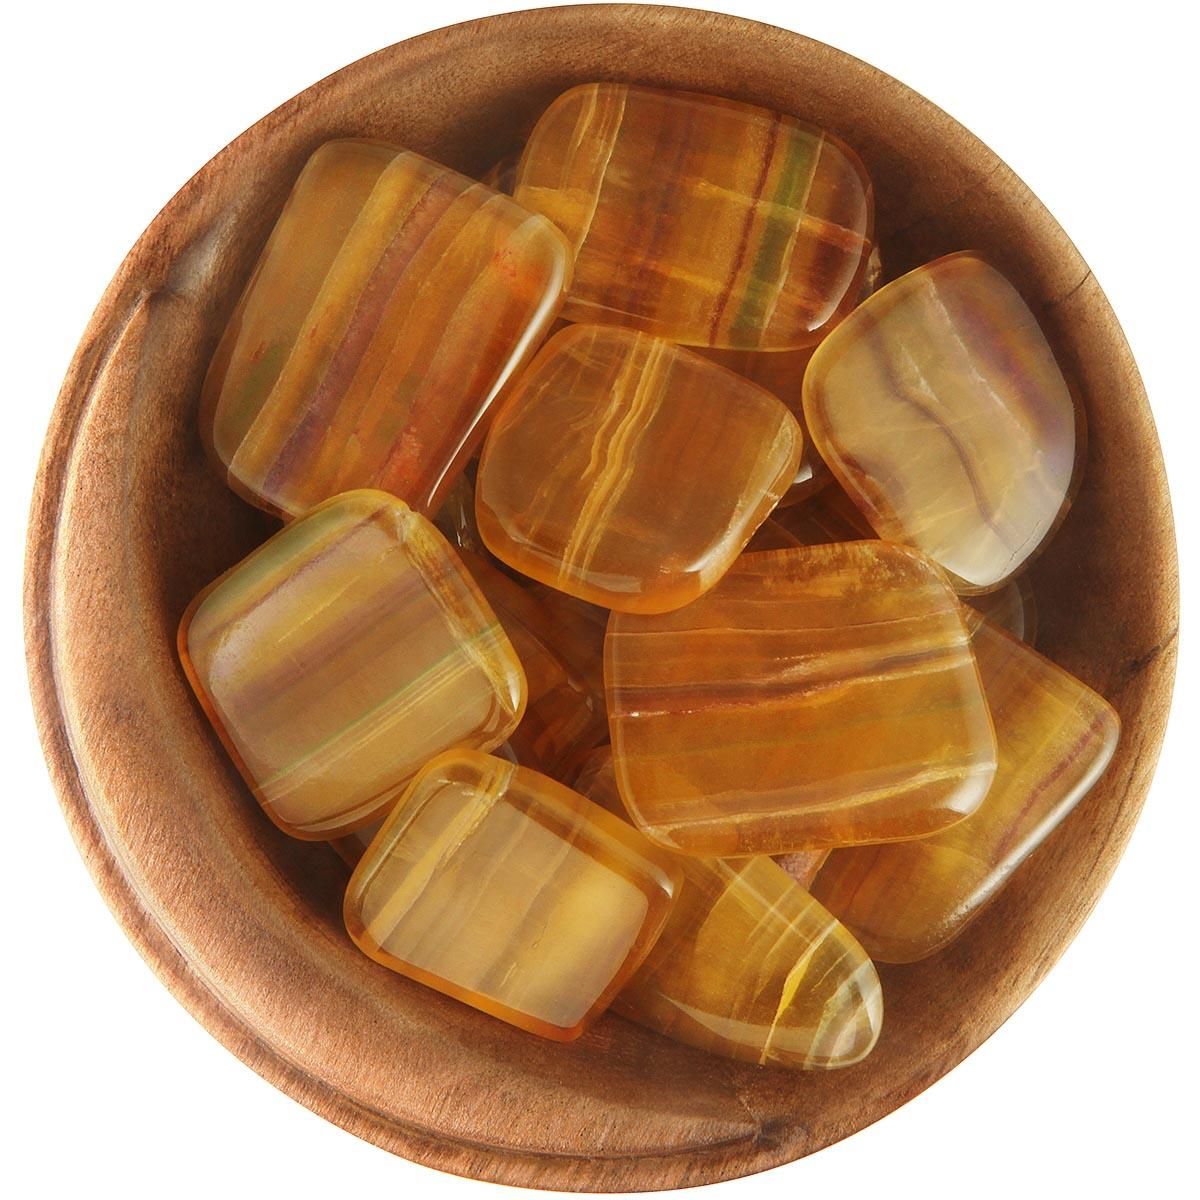 Yellow Fluorite Stones in a bowl with a few rainbow tiger stripes